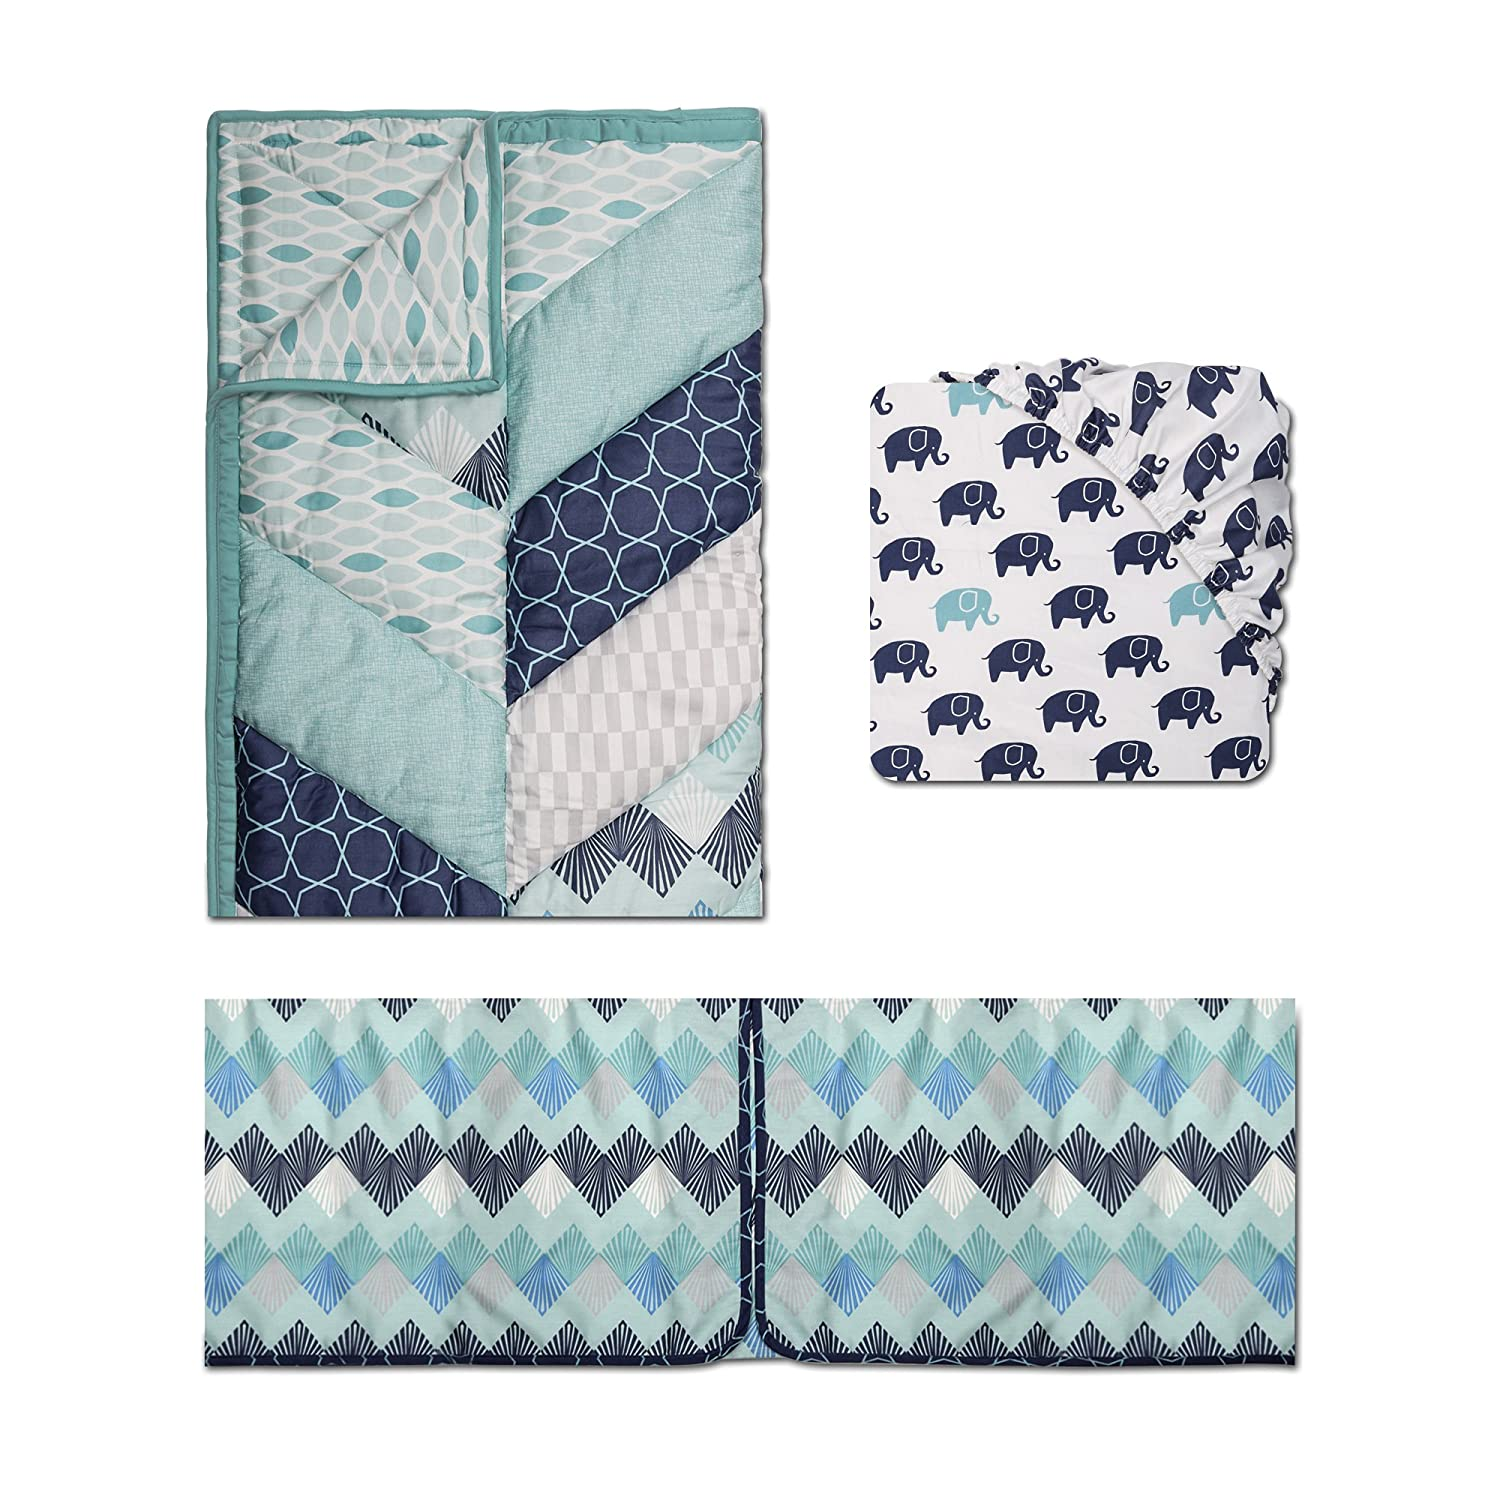 7ac2d511f03 Amazon.com   Mosaic Elephant and Geometric 3 Piece Baby Boy Crib Bedding  Sets   Baby